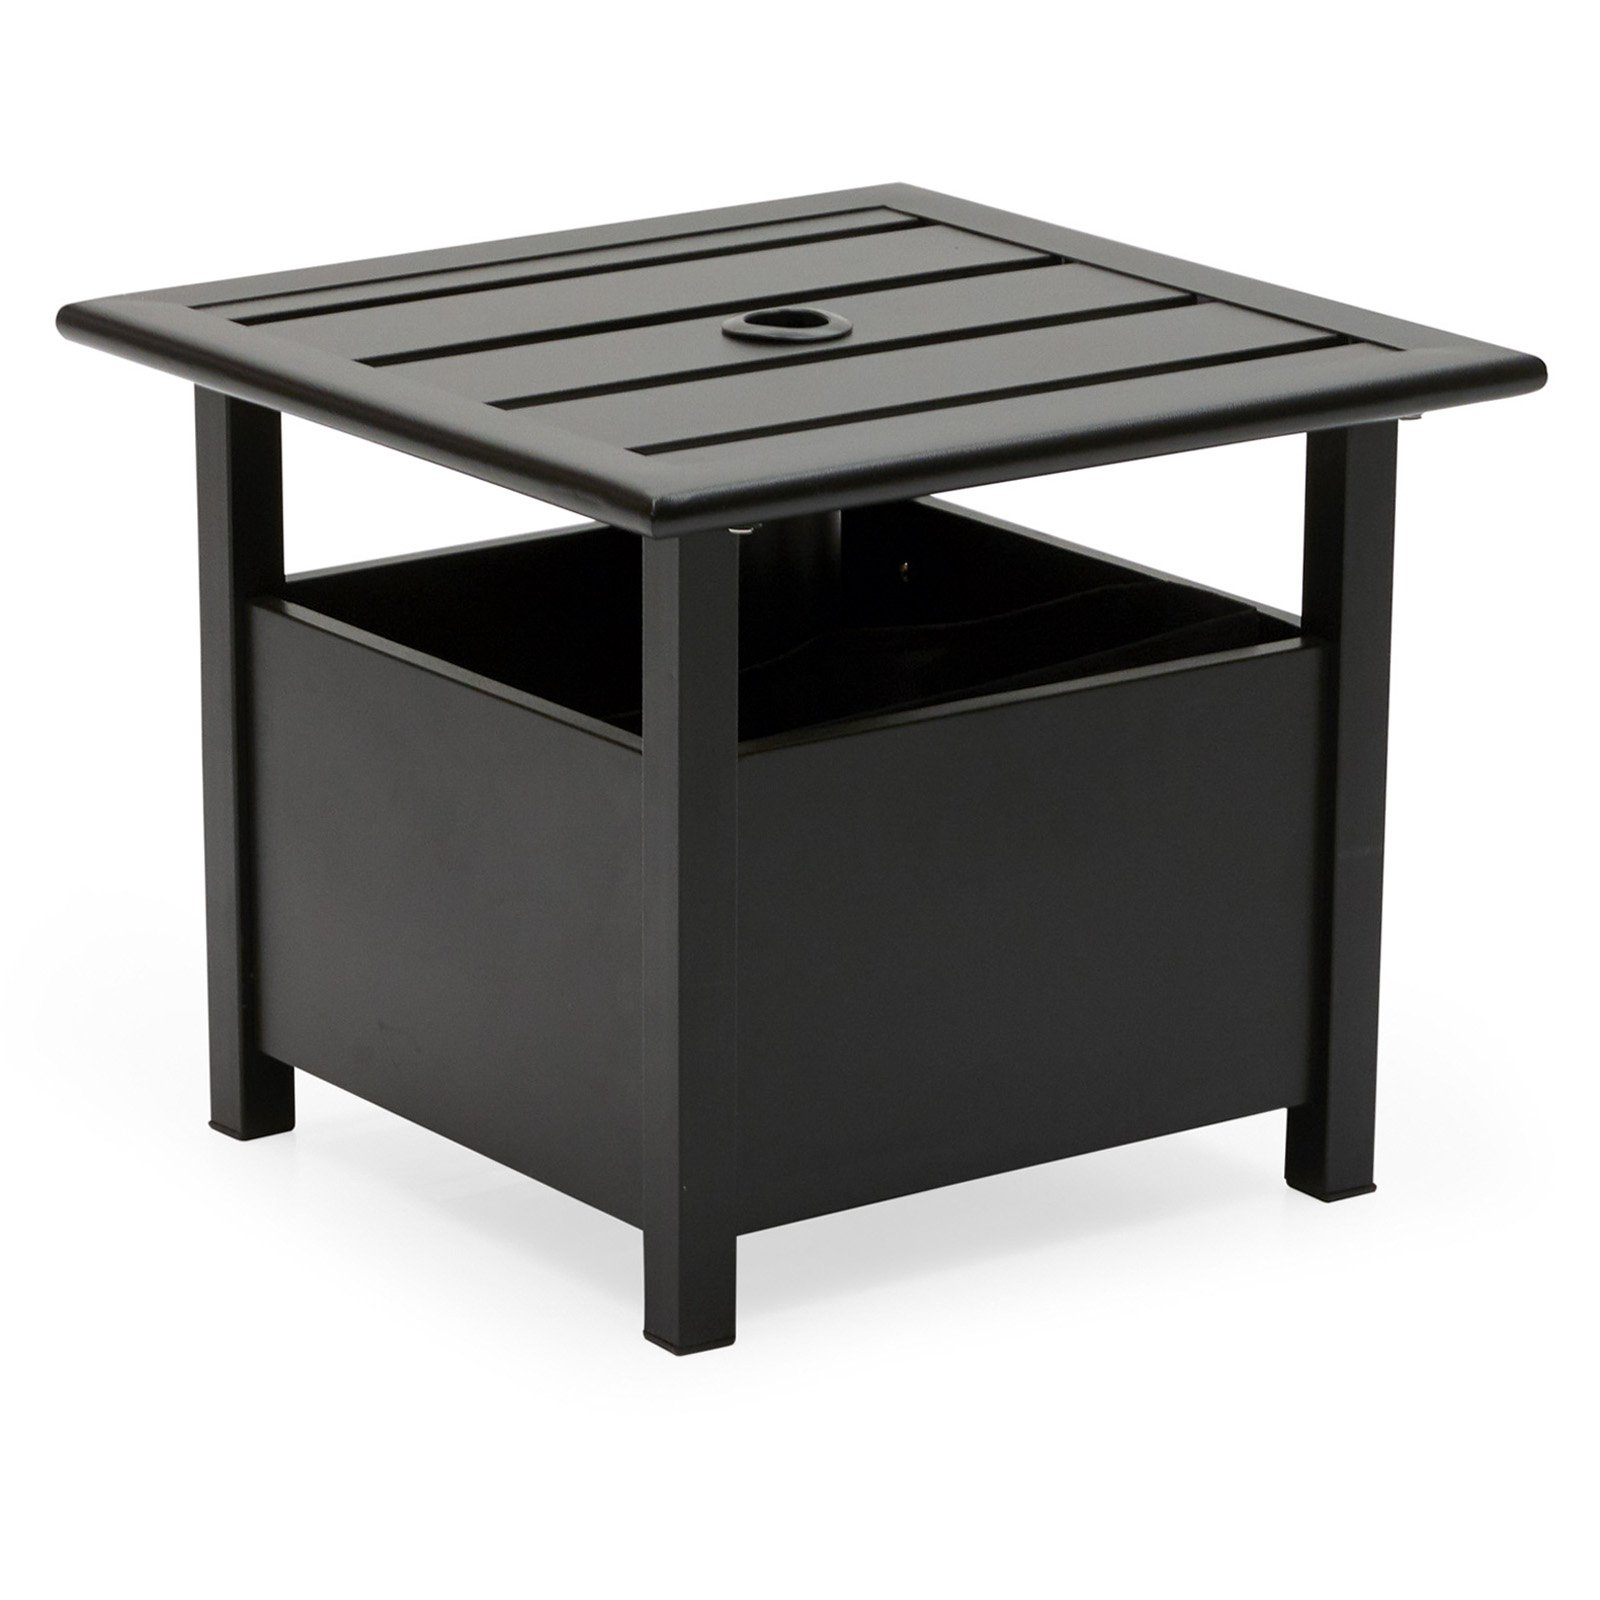 Belham Living Steel Square Umbrella Side Table with Slat Top